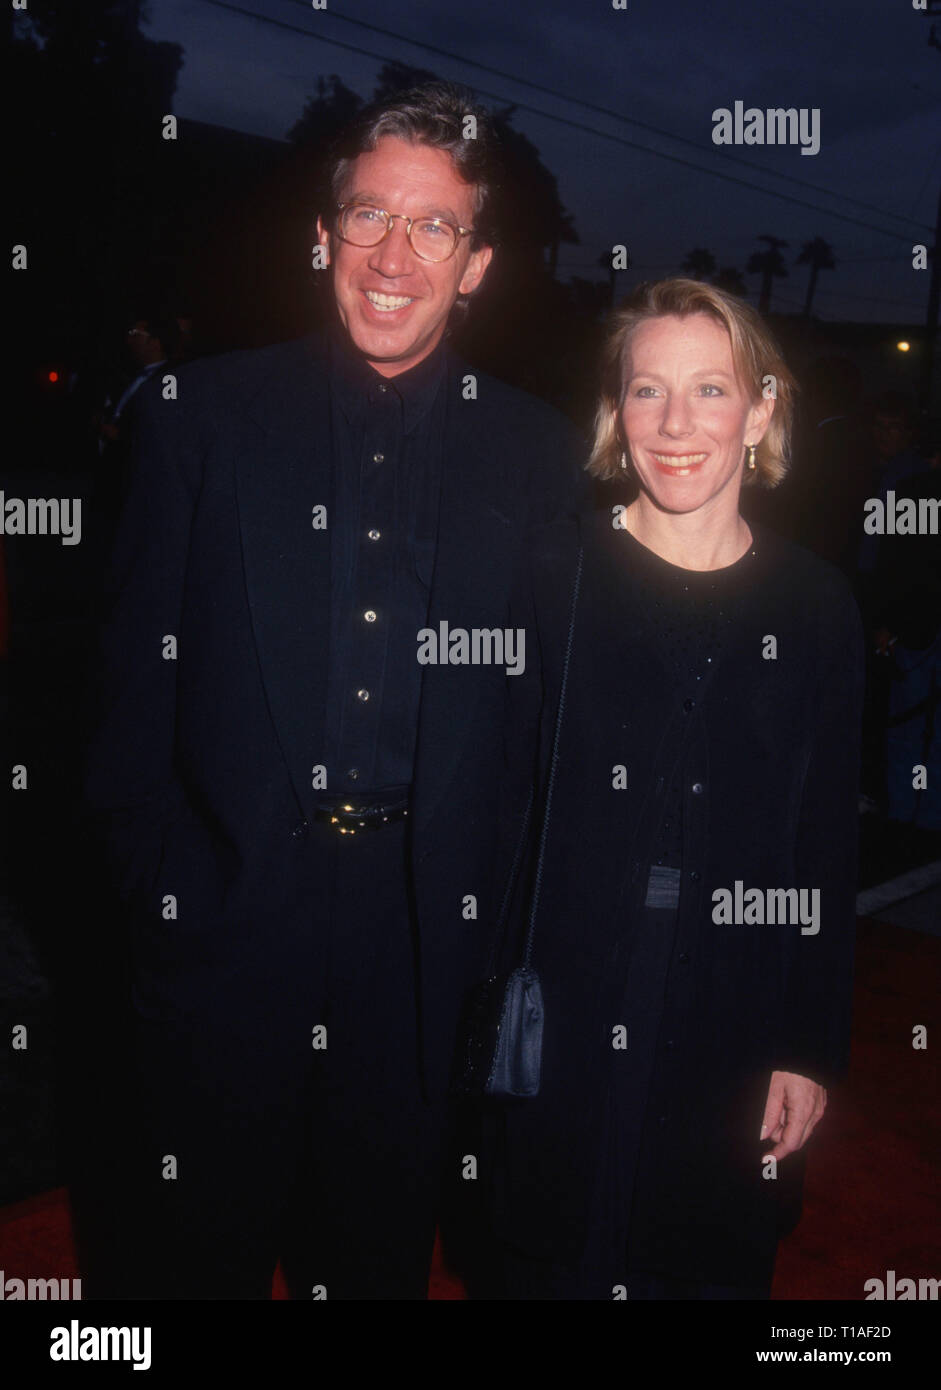 Los Angeles Ca March 6 Actor Tim Allen And Wife Laura Deibel Attend The Eighth Annual American Comedy Awards On March 6 1994 At The Shrine Auditorium In Los Angeles California Their divorce was finalized four years later. https www alamy com los angeles ca march 6 actor tim allen and wife laura deibel attend the eighth annual american comedy awards on march 6 1994 at the shrine auditorium in los angeles california photo by barry kingalamy stock photo image241791157 html